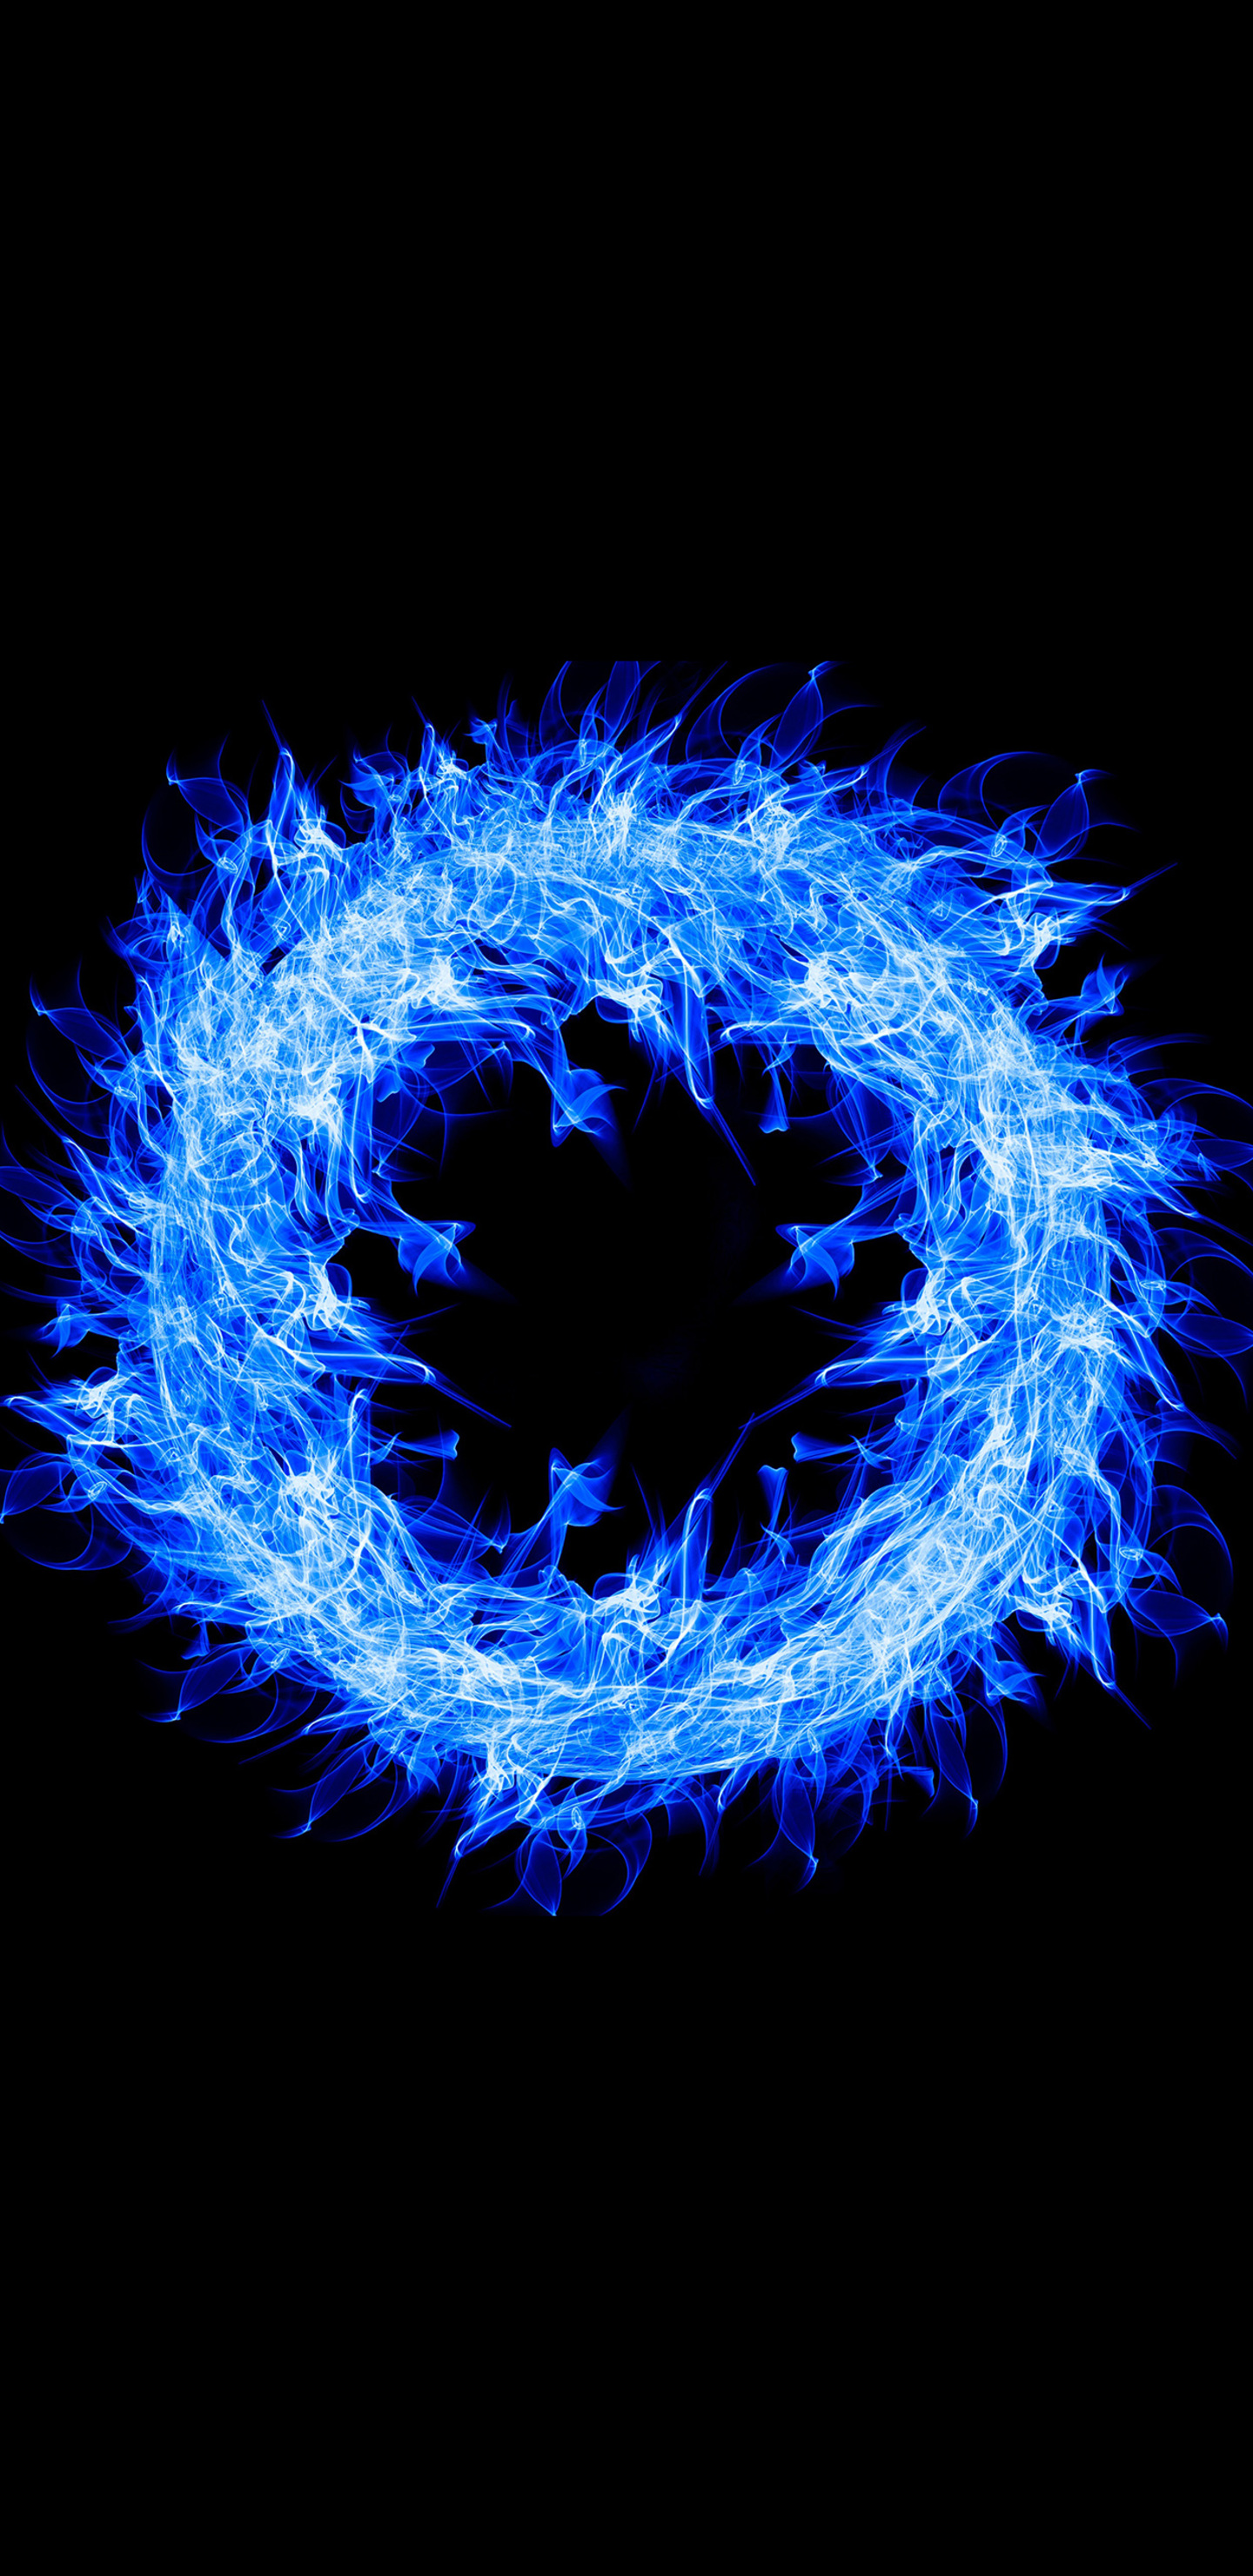 blue-fire-ring-4k-i5.jpg